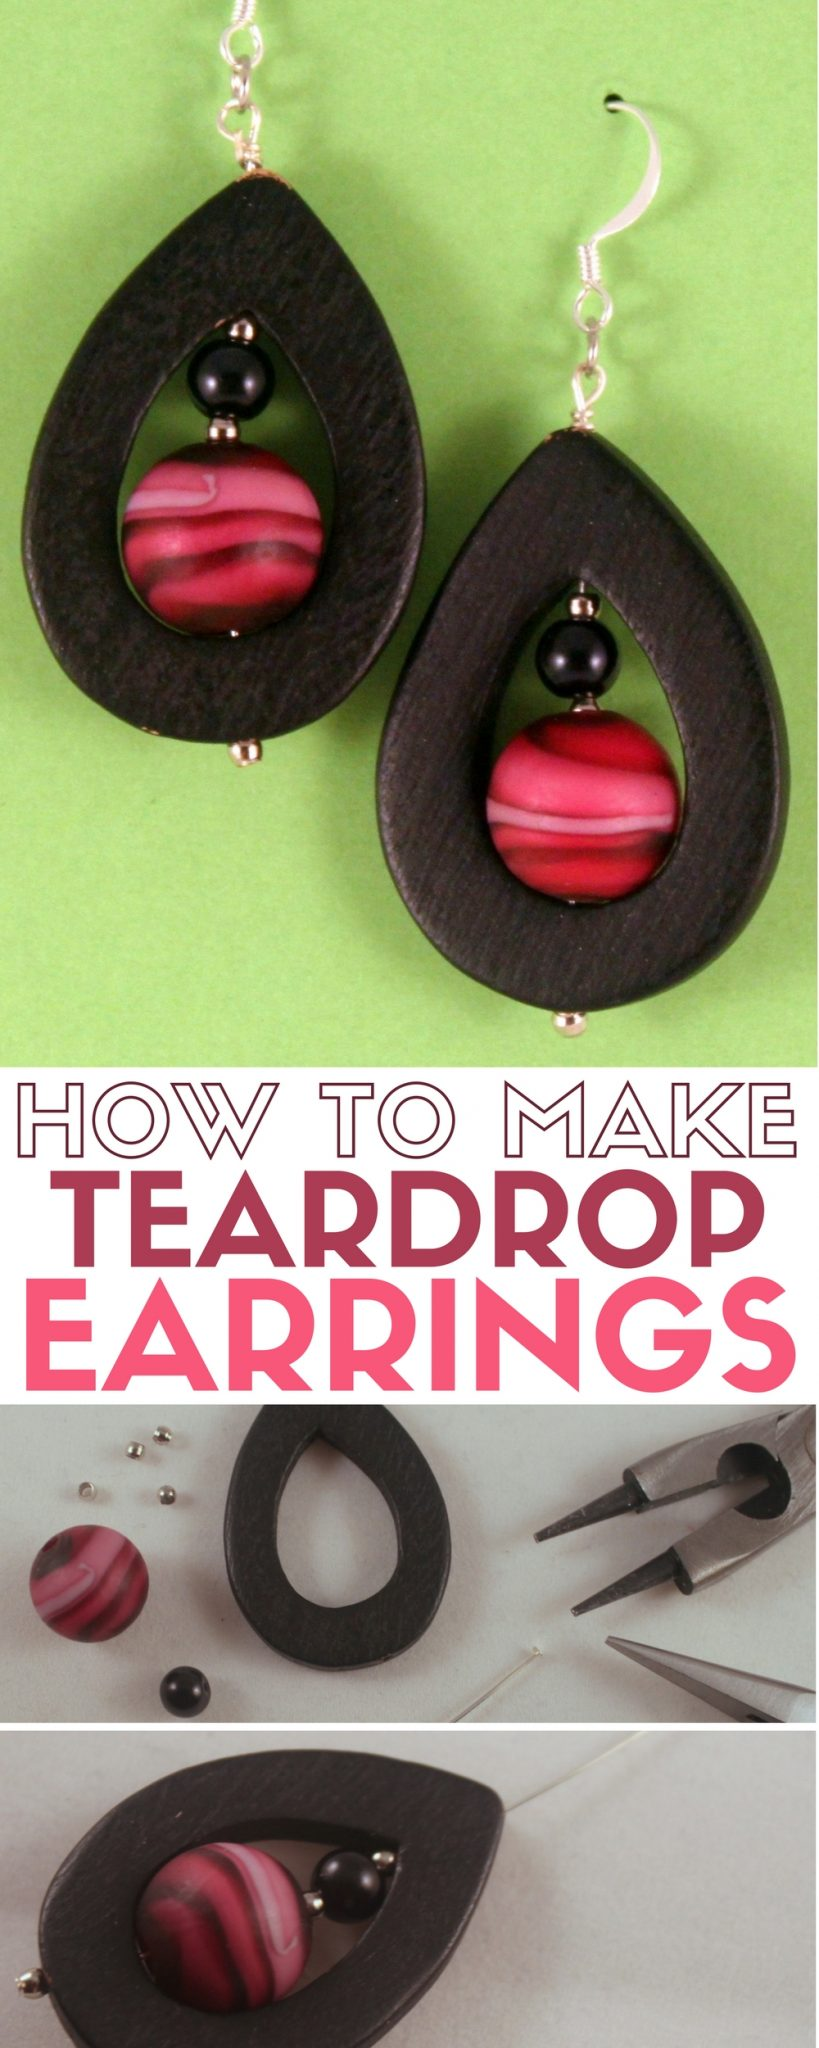 Learn how to make your own DIY jewelry. A simple DIY craft tutorial idea for teardrop earrings that are easier to make than you think!